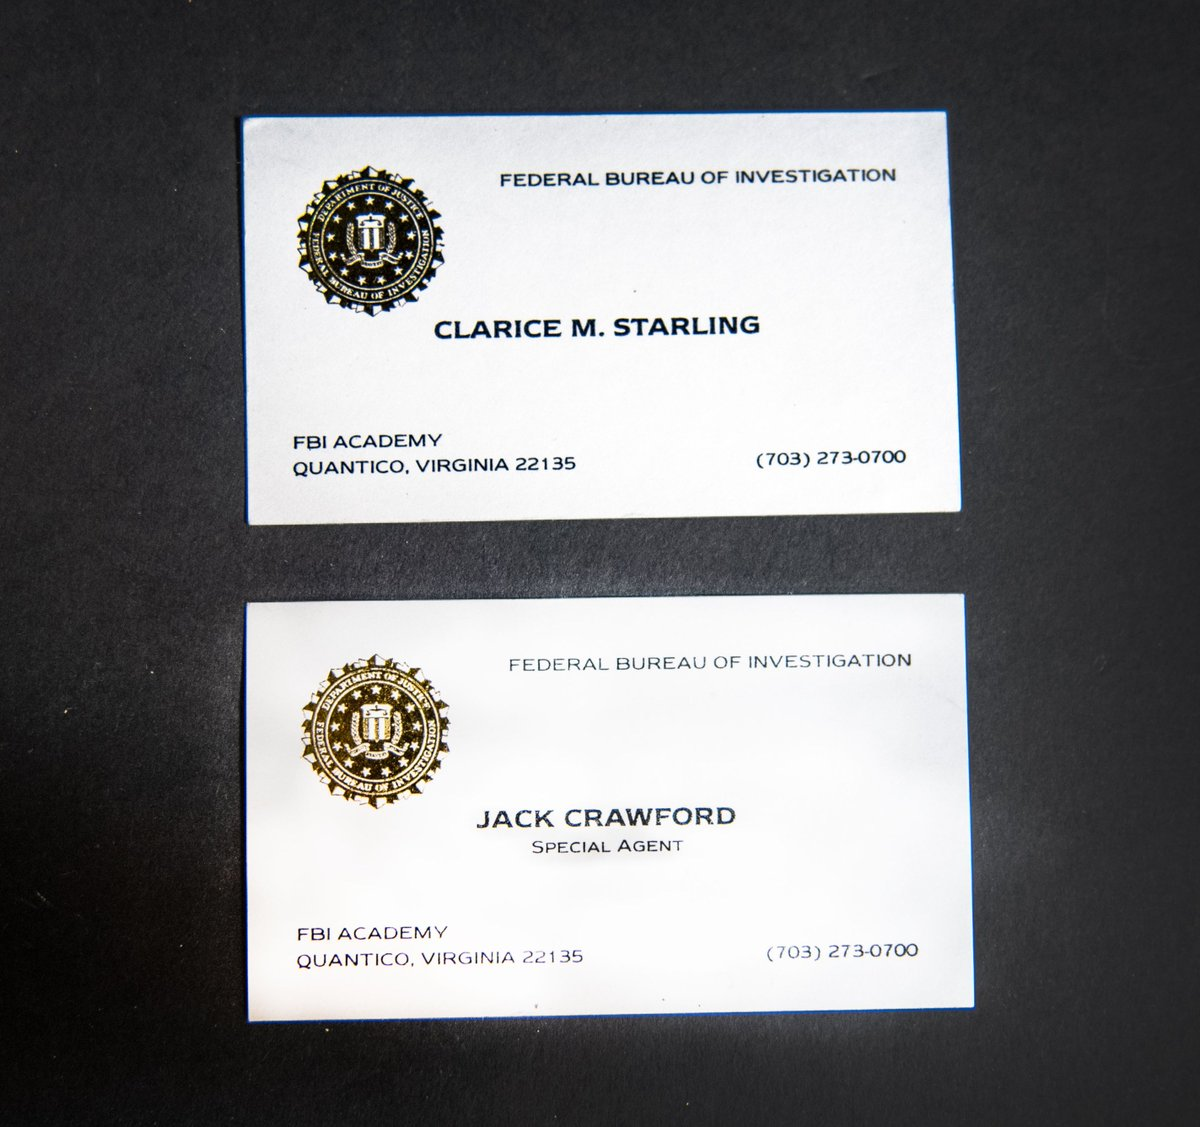 The #FBI is marking the 30th anniversary of 1991s hit film, Silence of the Lambs with its February #ArtifactoftheMonth. It features a set of business cards-one for Clarice Starling & one for Jack Crawford. They were one of the many small props to bring authenticity to the set.